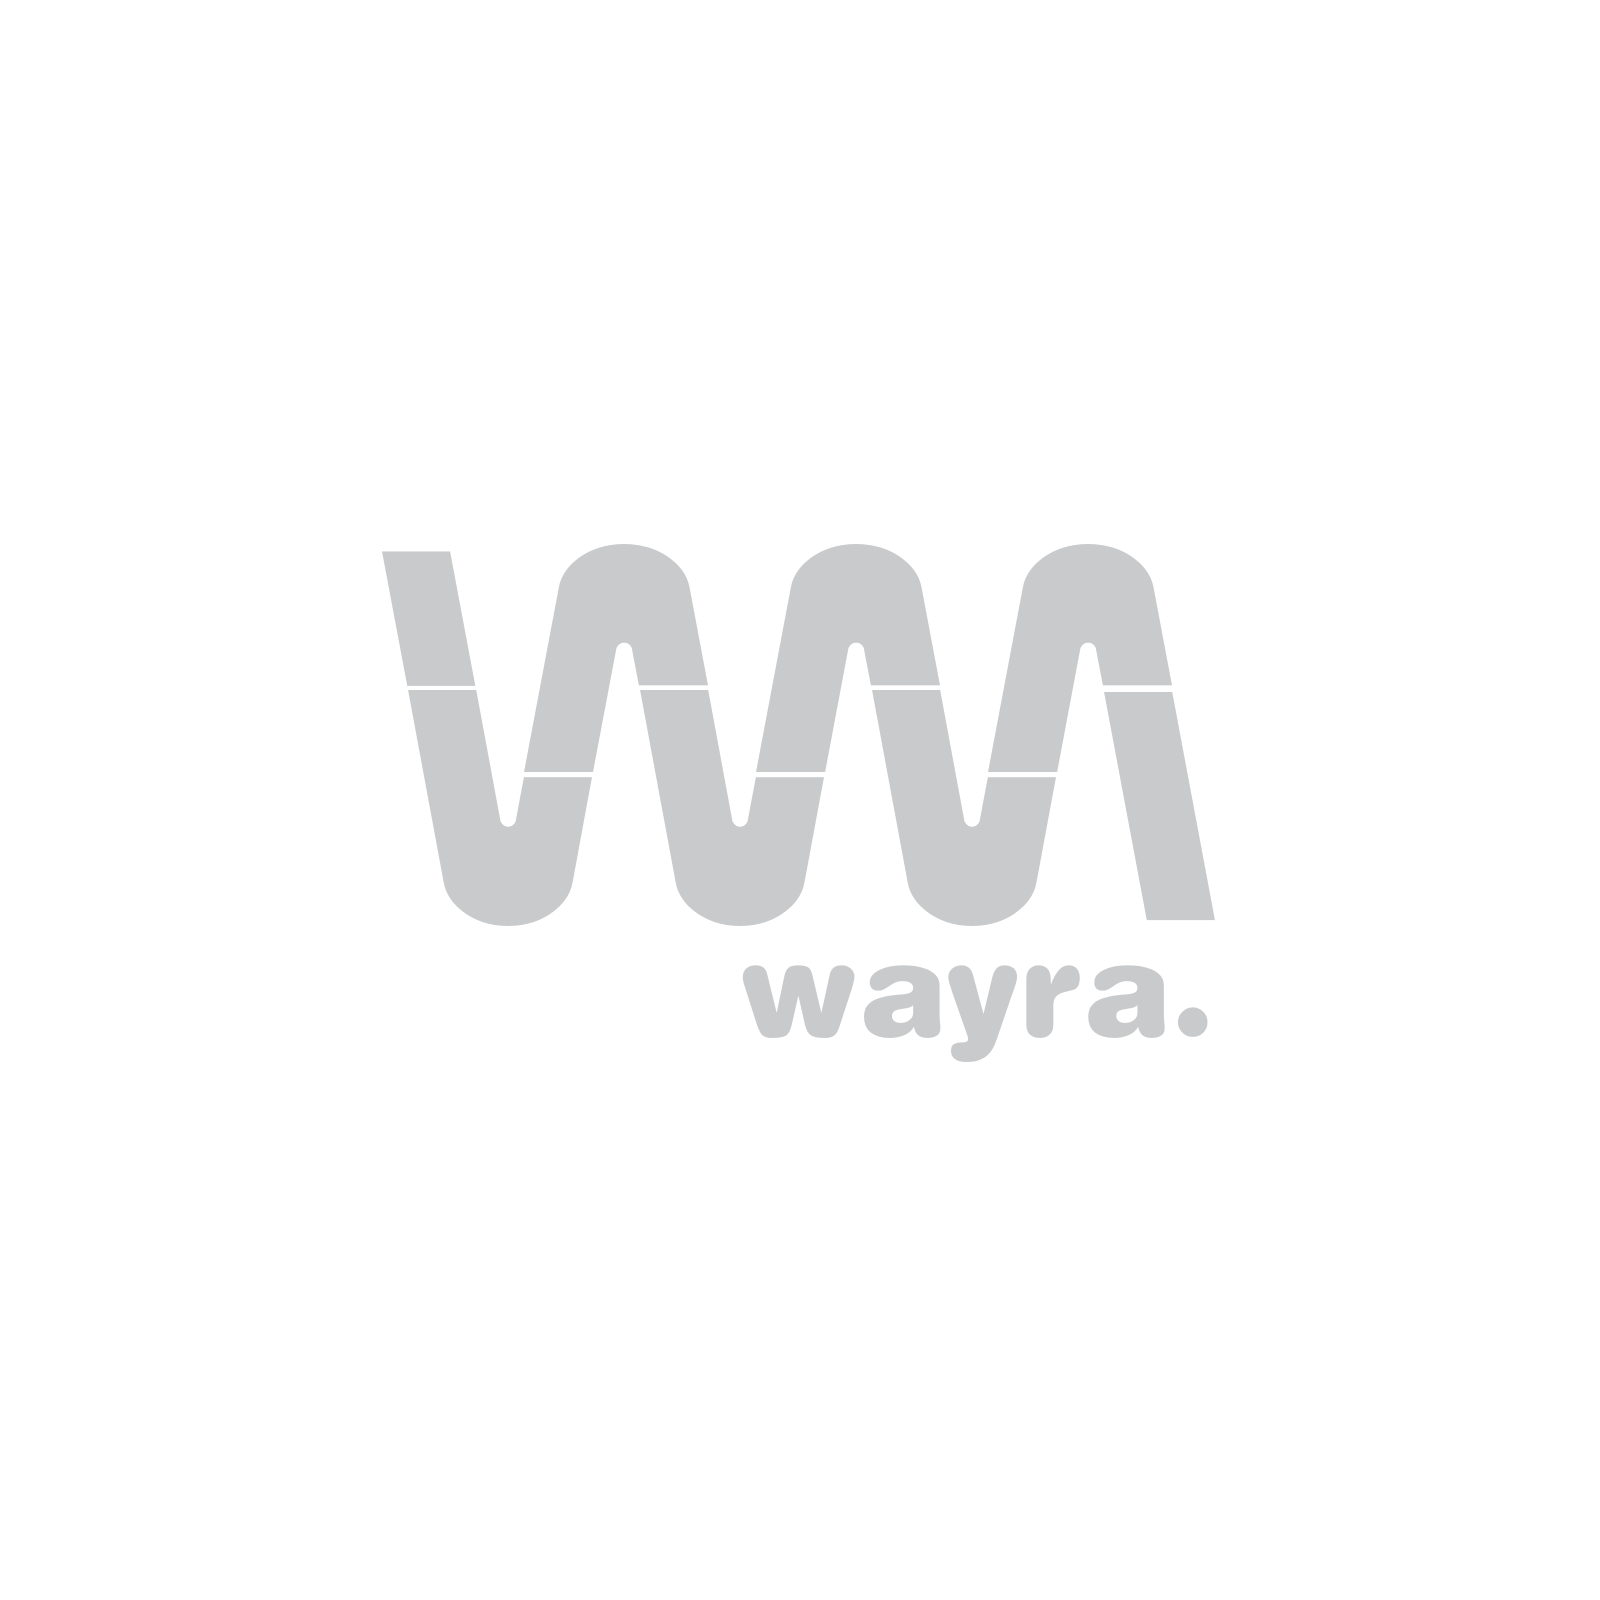 Copy of Wayra Logo